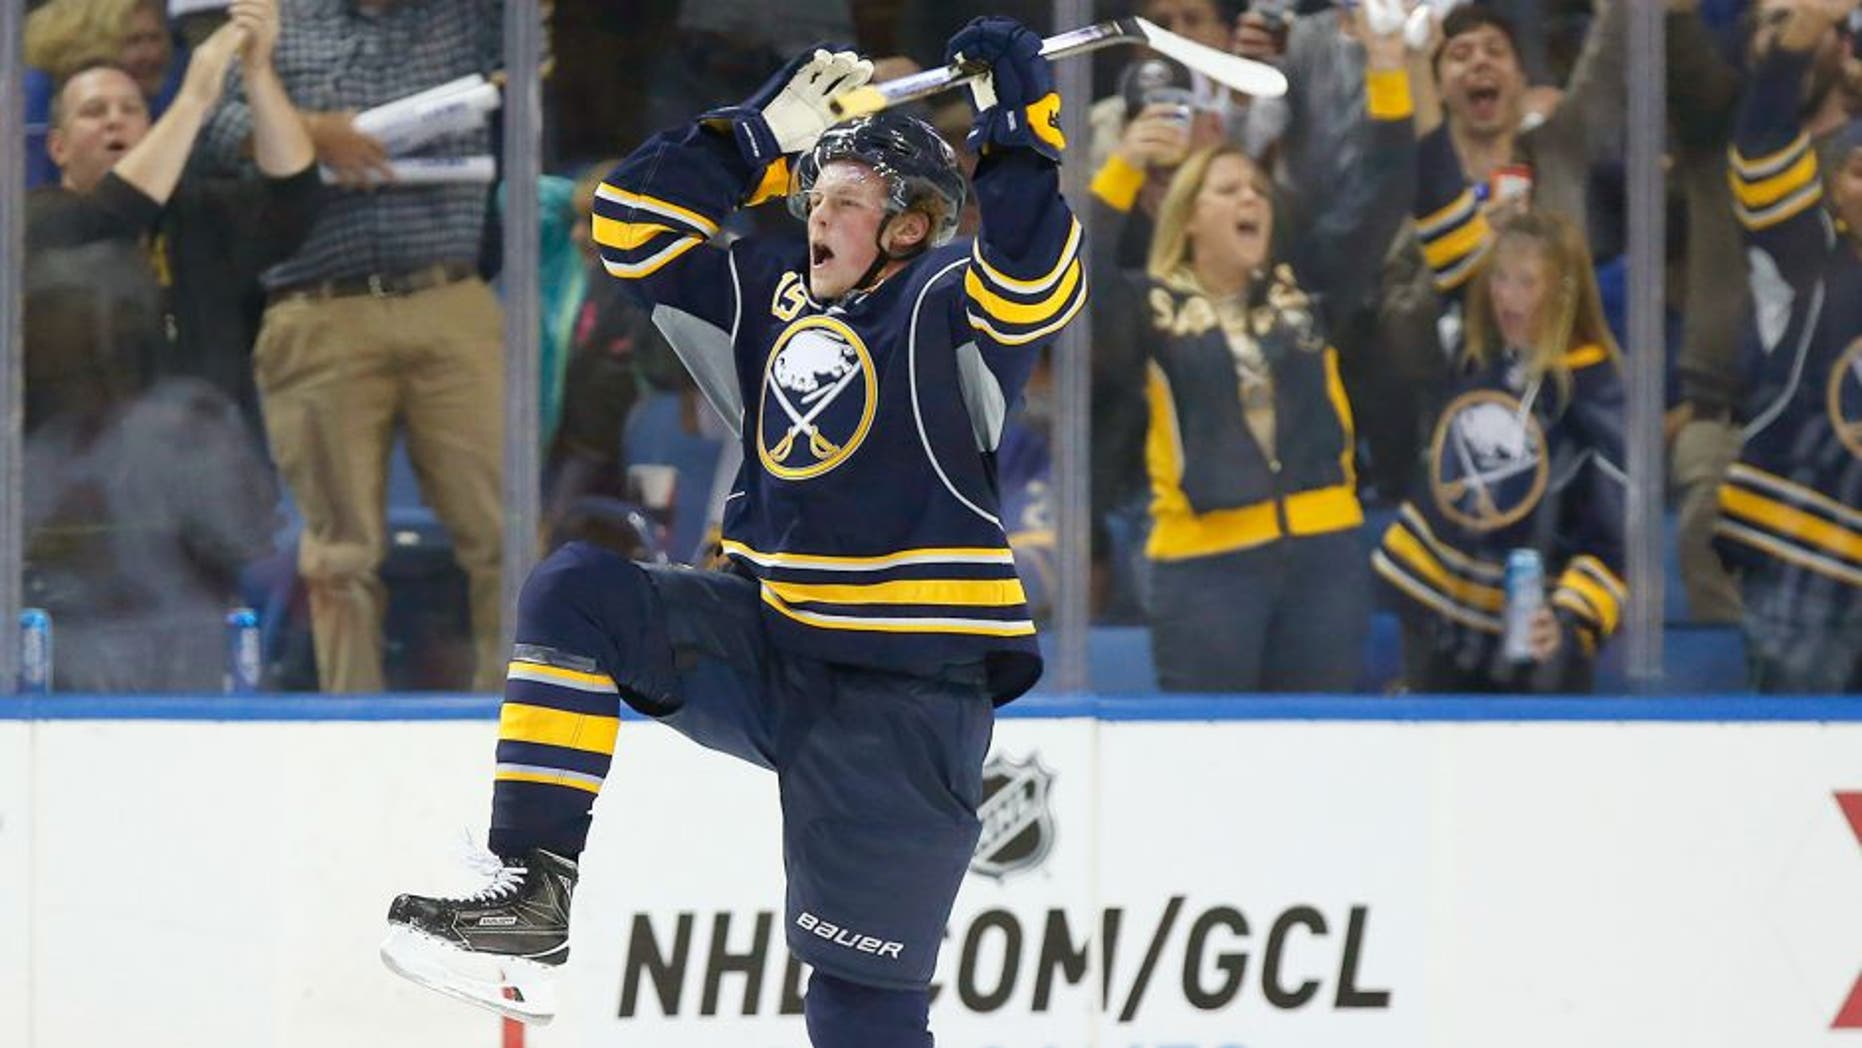 Oct 8, 2015; Buffalo, NY, USA; Buffalo Sabres center Jack Eichel (15) celebrates after scoring his first NHL goal during the third period against the Ottawa Senators at First Niagara Center. Senators beat the Sabres 3-1. Mandatory Credit: Kevin Hoffman-USA TODAY Sports